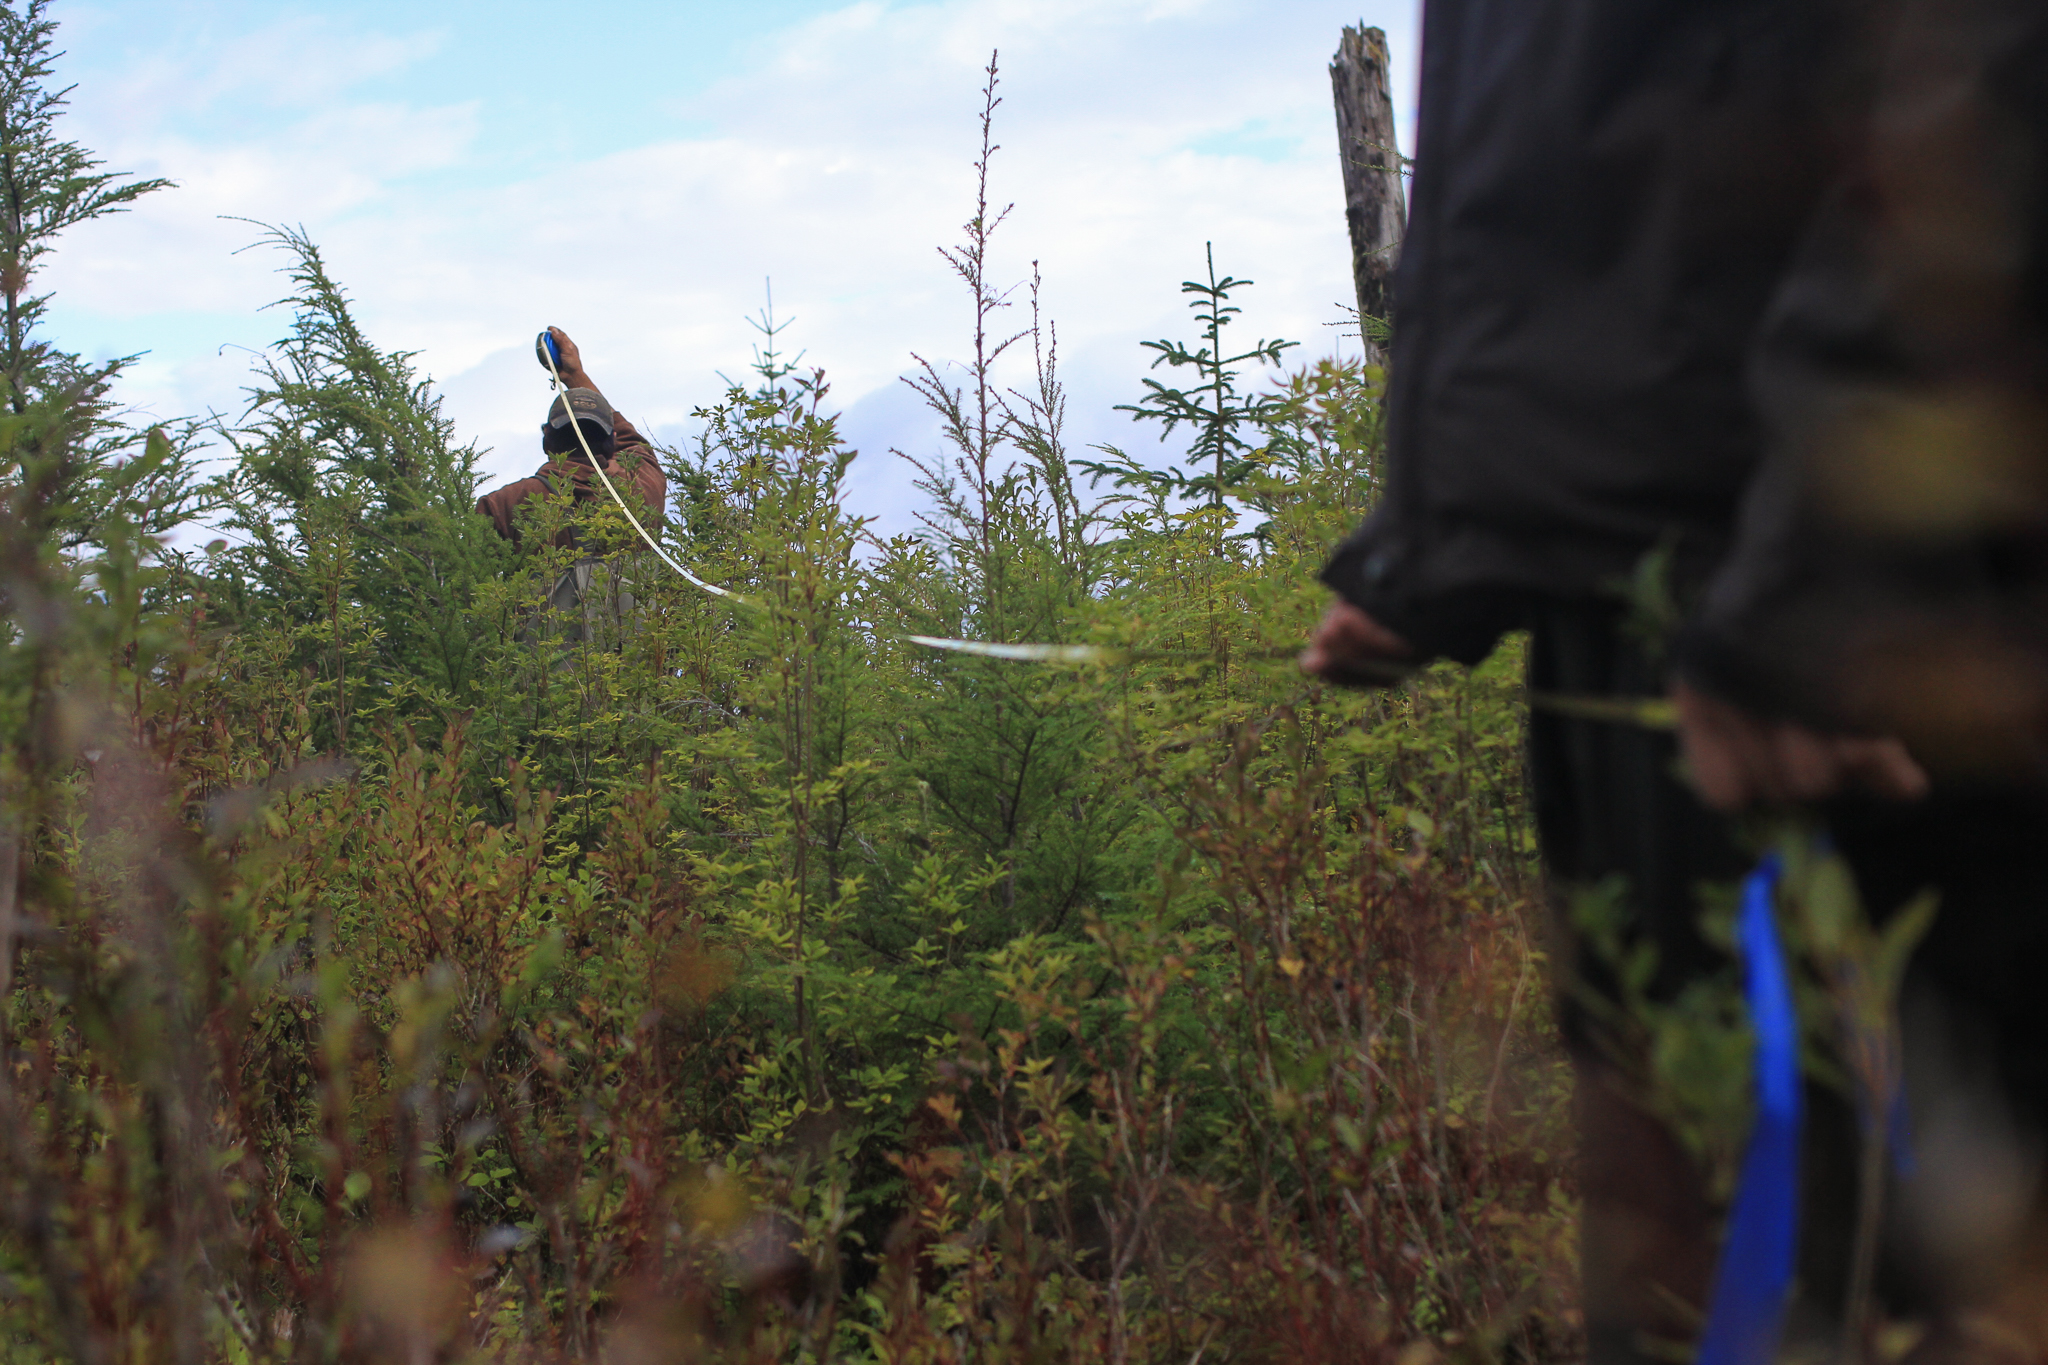 Phillip Sharclane and Donovan Smith use a tape-measure and flagging tape to stake out their survey plot.